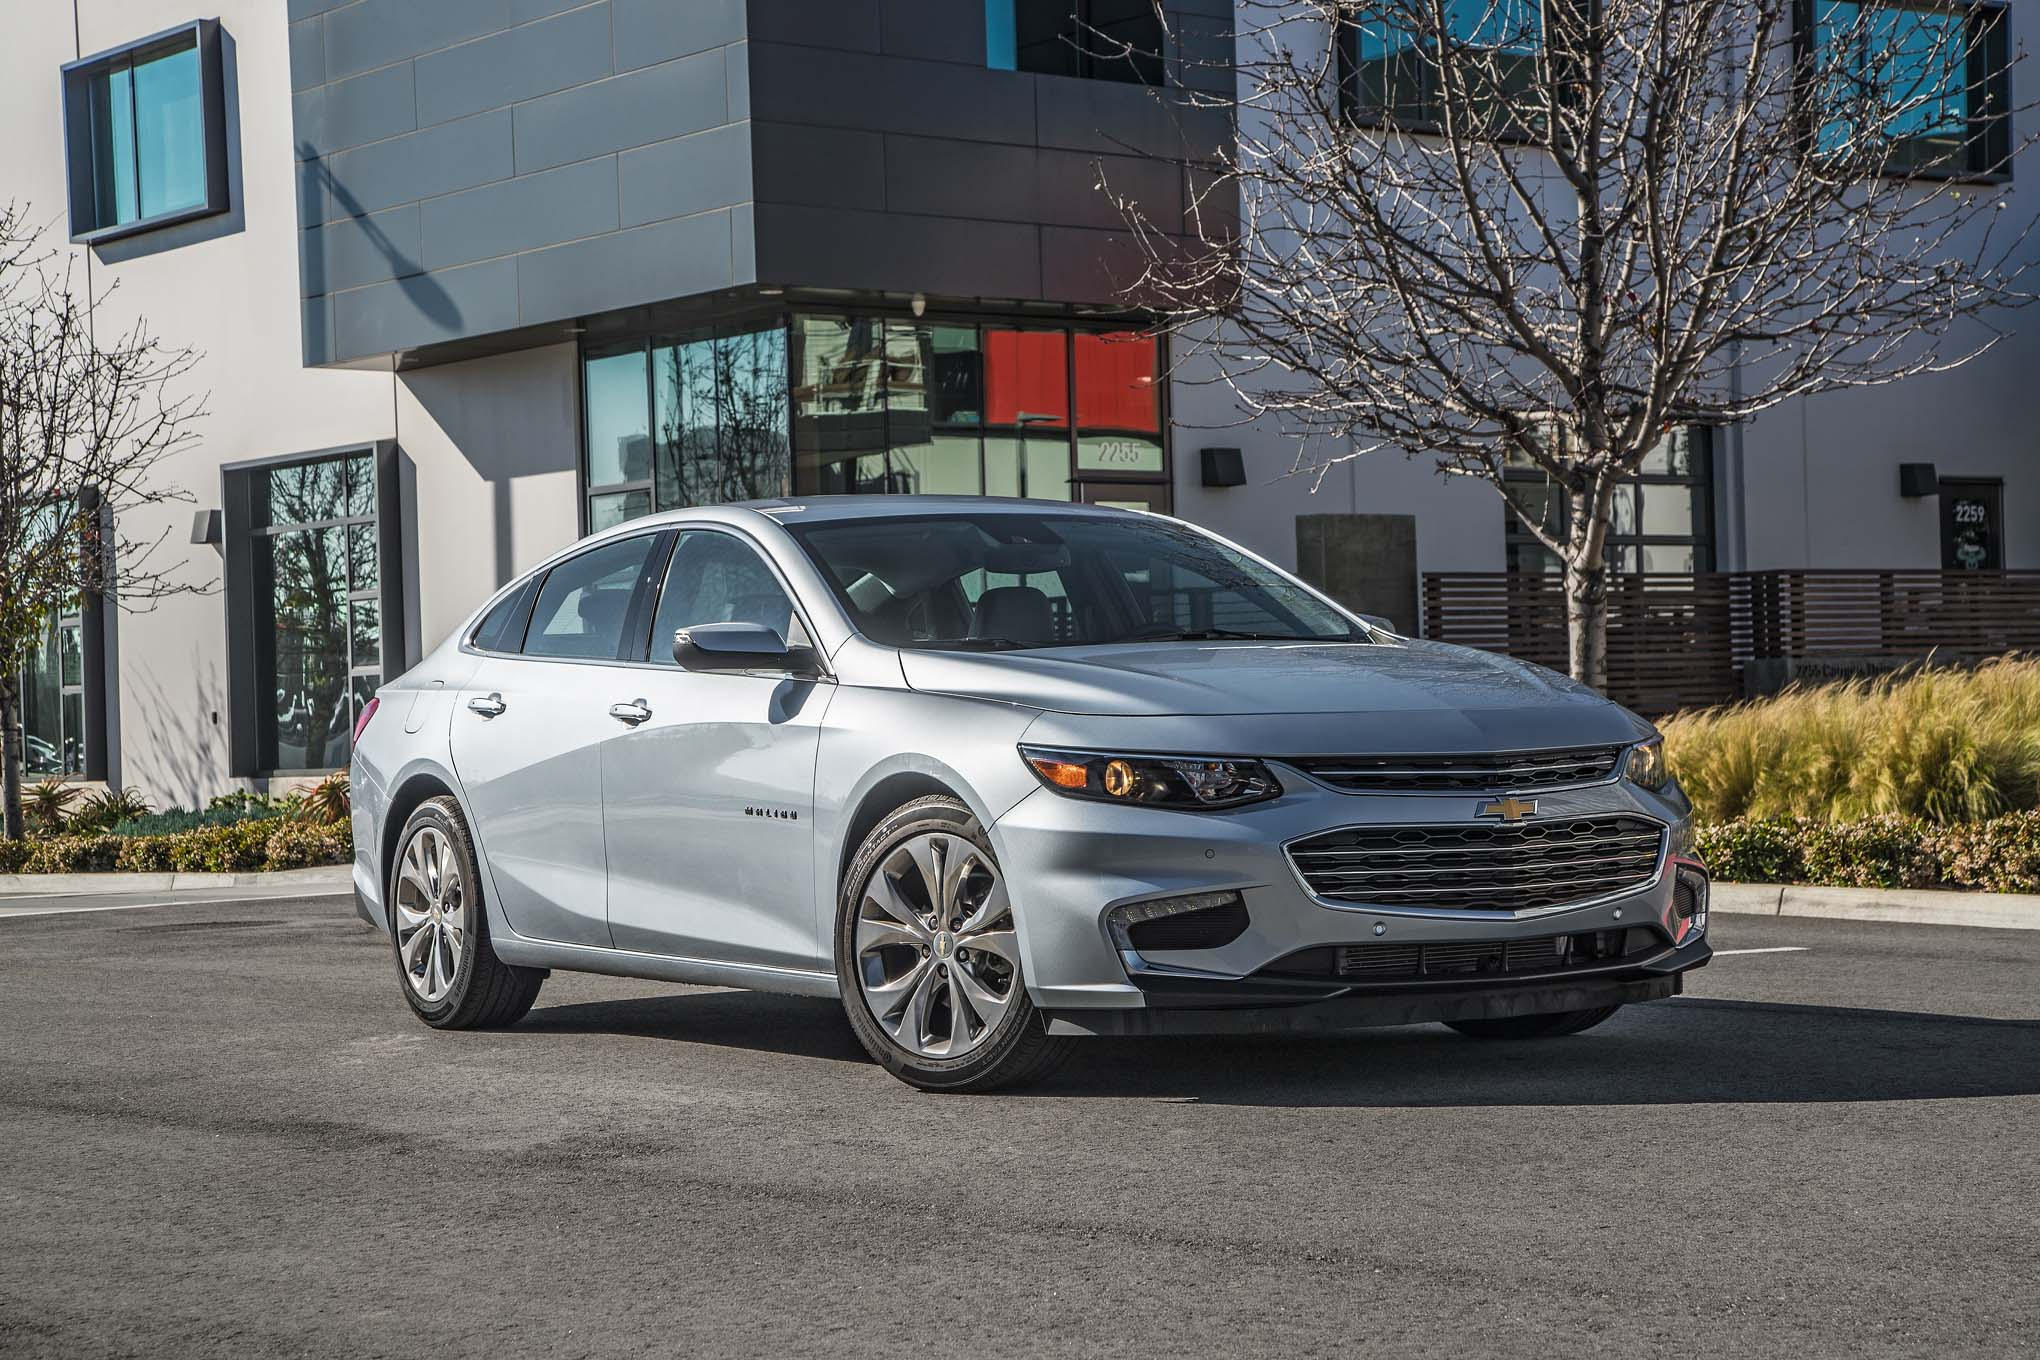 2017 Chevrolet Malibu 20T Premier front three quarters